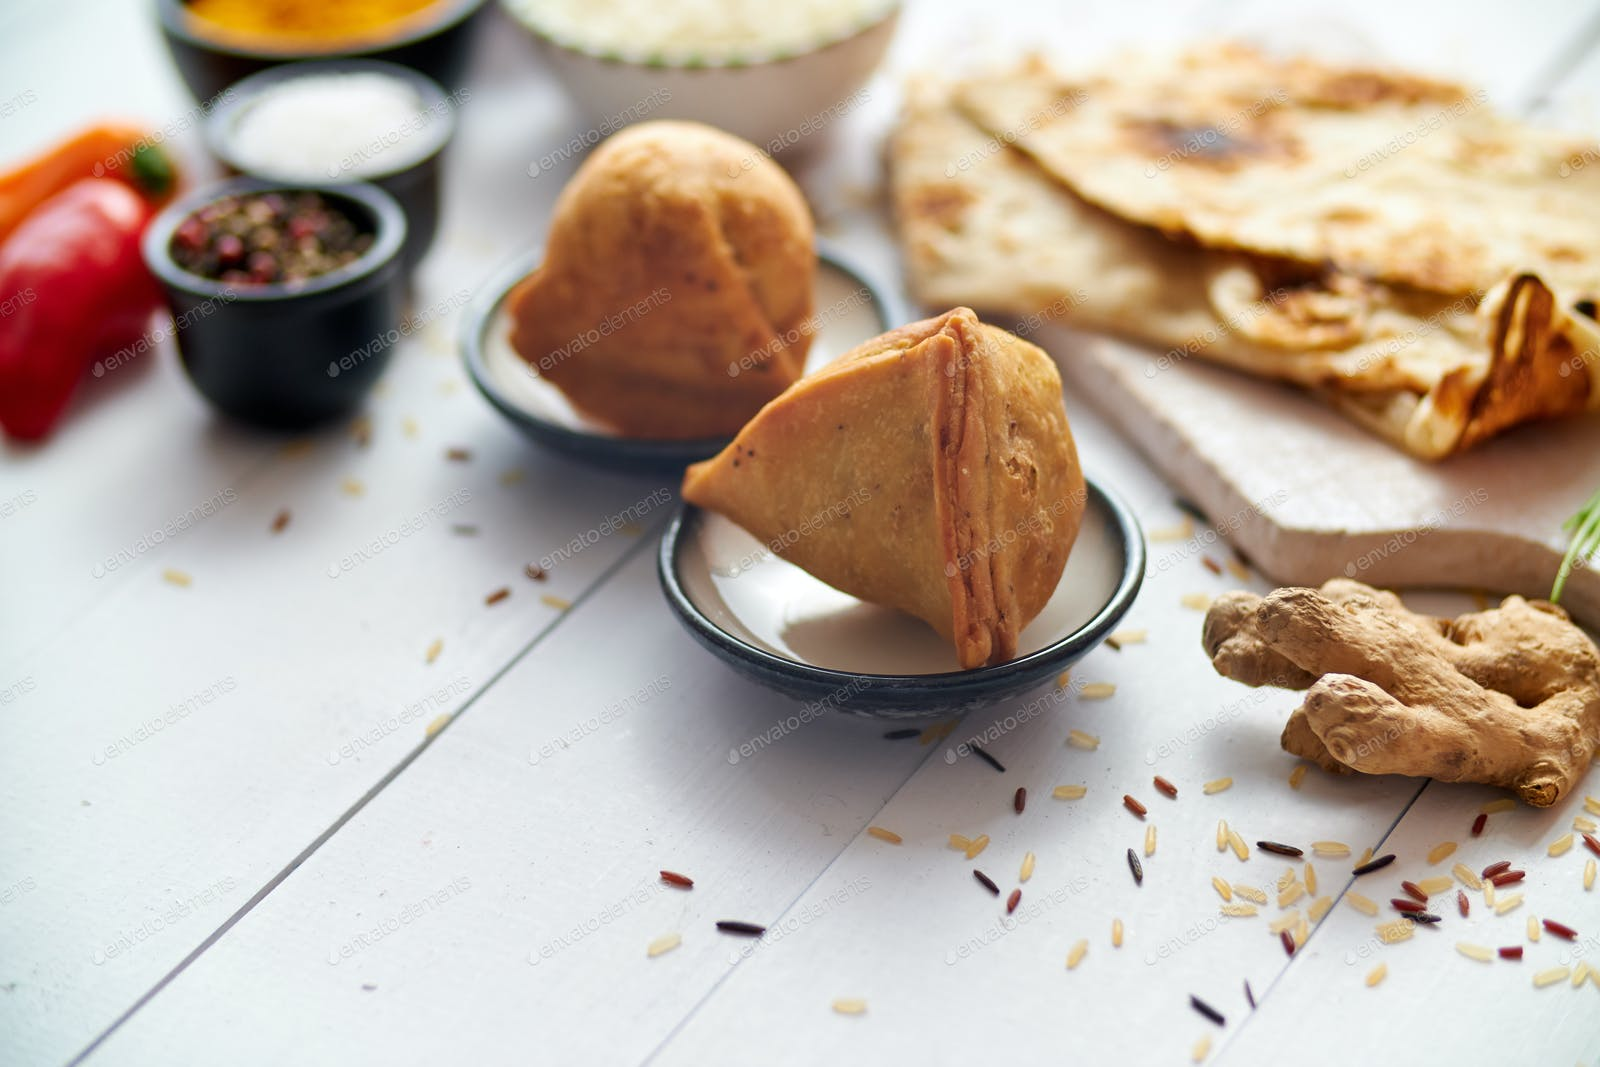 Traditional Indian Food Snack Samosa Served In A Plate On A White